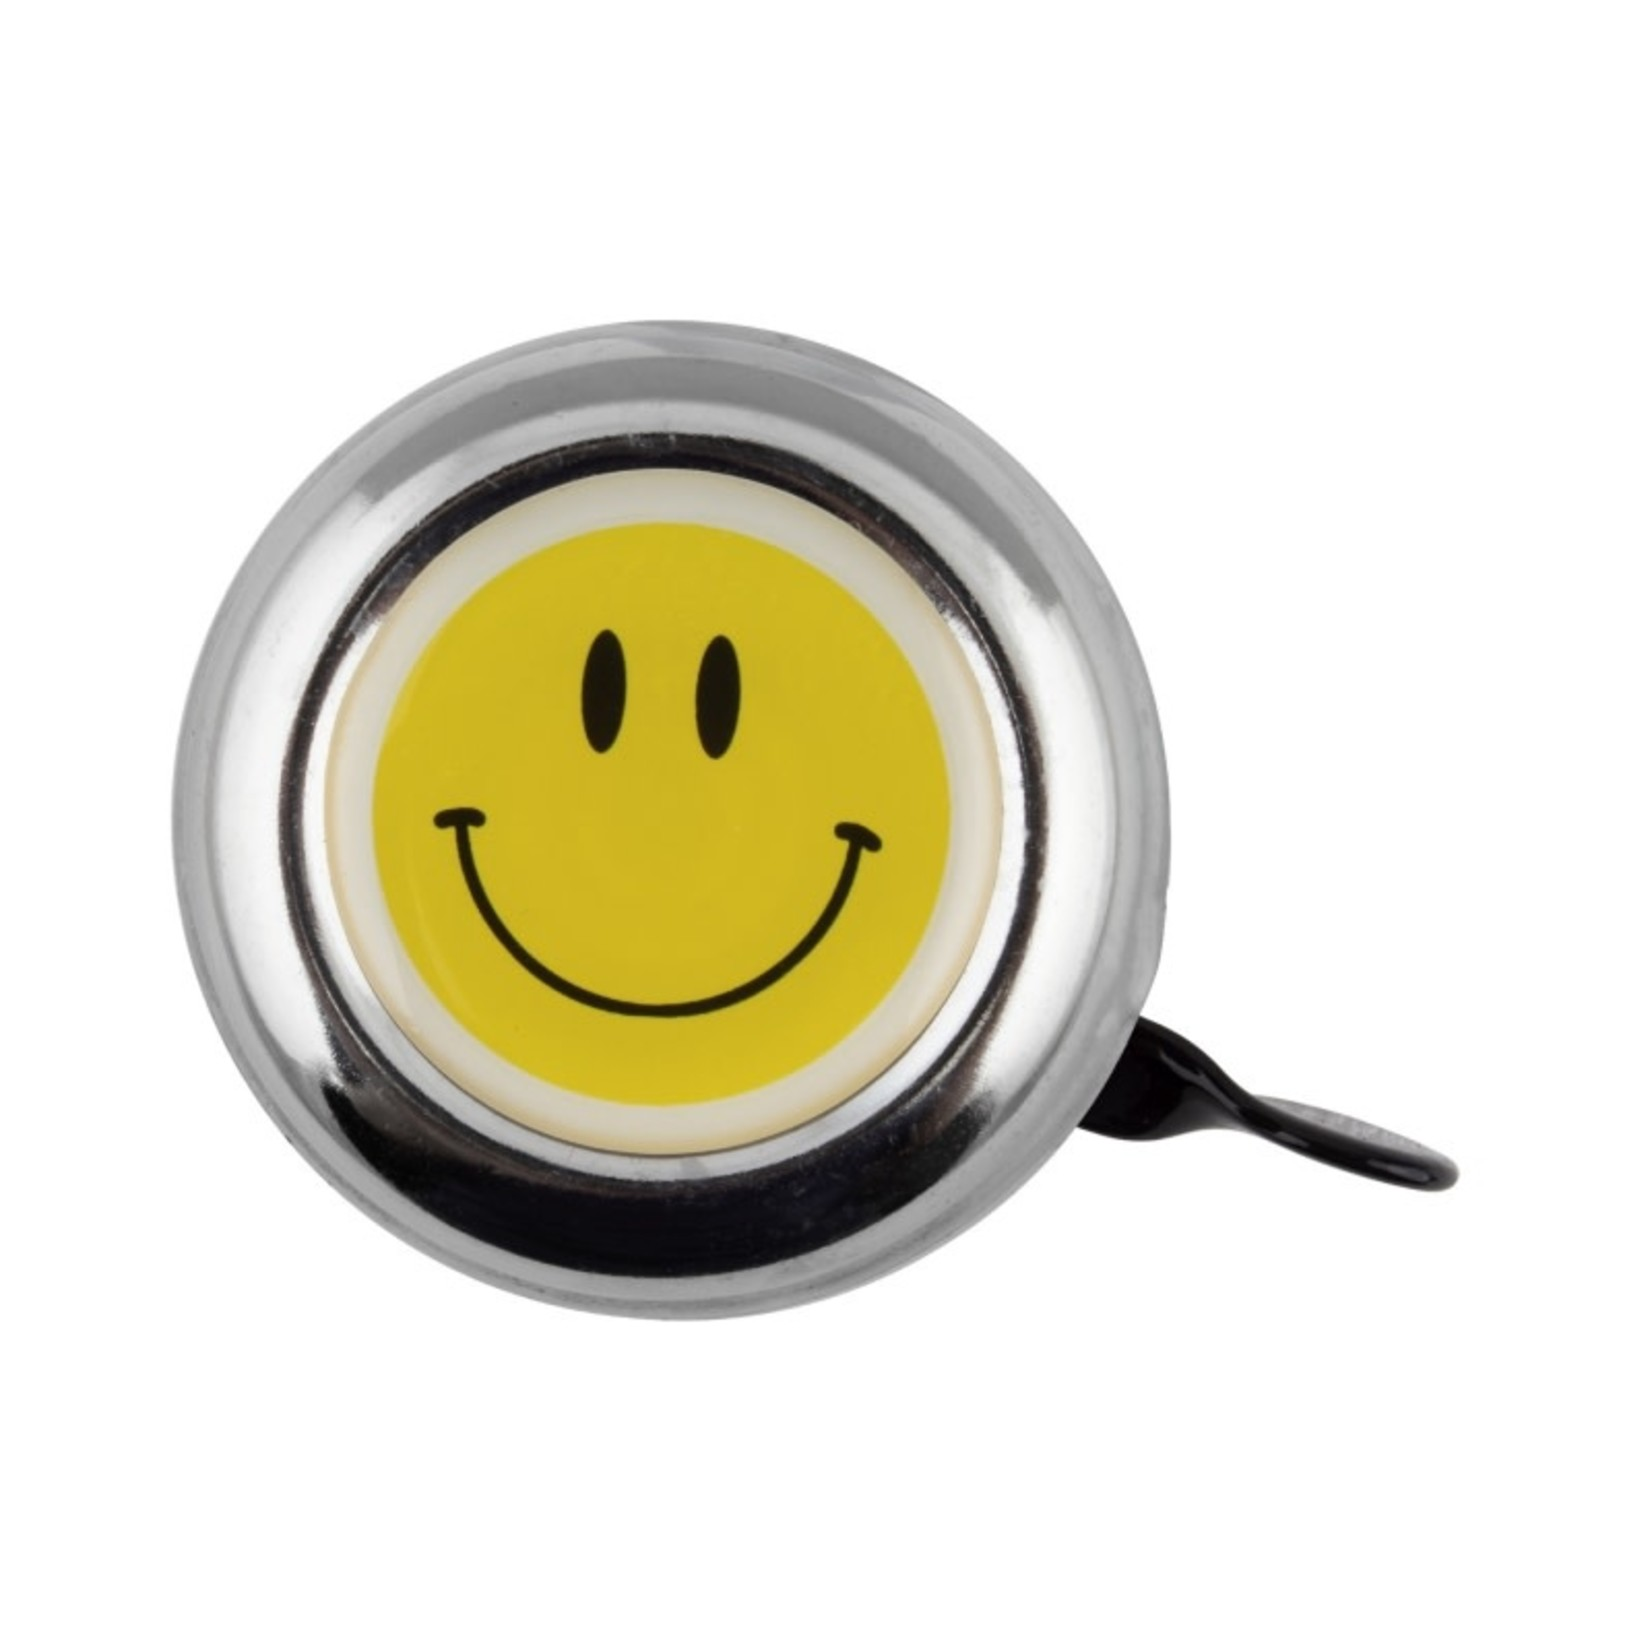 Swell Bells Smiley